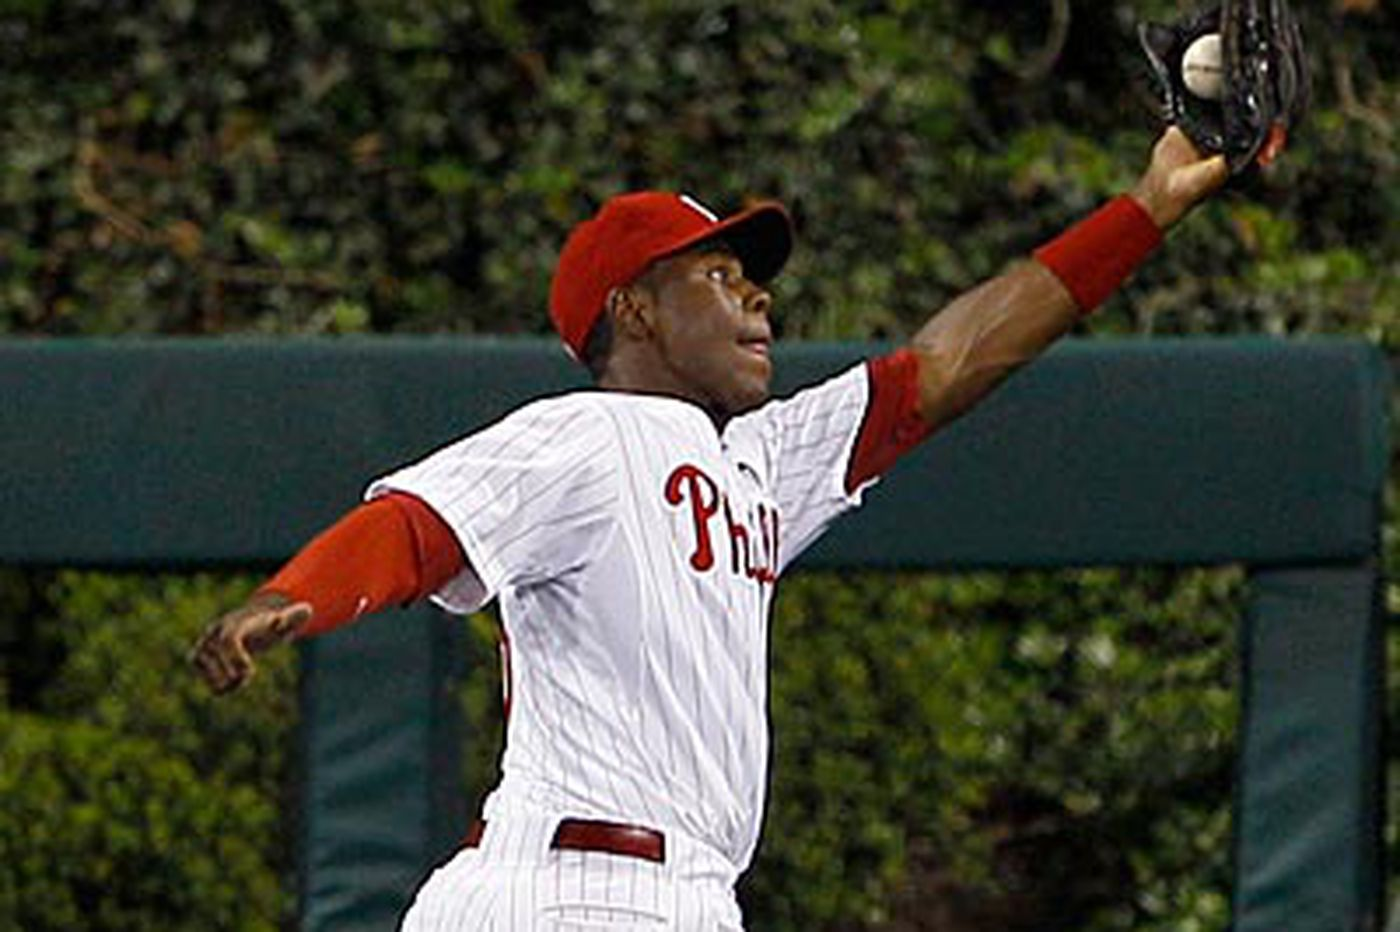 Phillies Notebook: Phillies send Mayberry back to minors for his own good